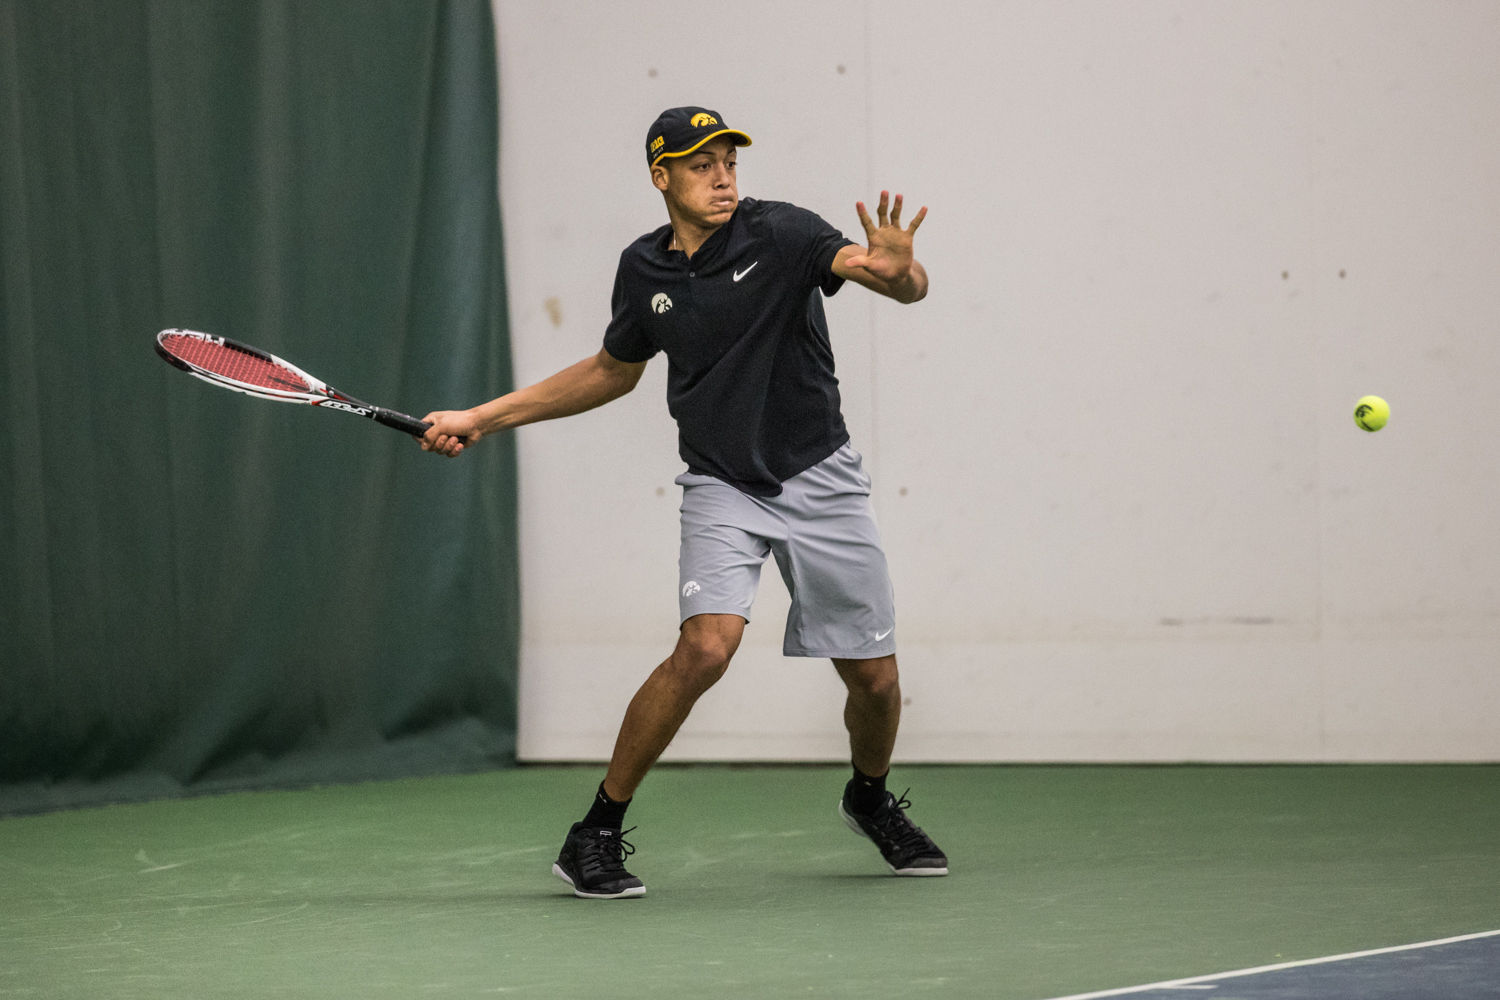 Iowa%27s+Oliver+Okonkwo+hits+a+forehand+during+a+men%27s+tennis+match+between+Iowa+and+East+Tennessee+State+on+Friday%2C+January+25%2C+2019.+The+Hawkeyes+defeated+the+Buccaneers%2C+4-3.